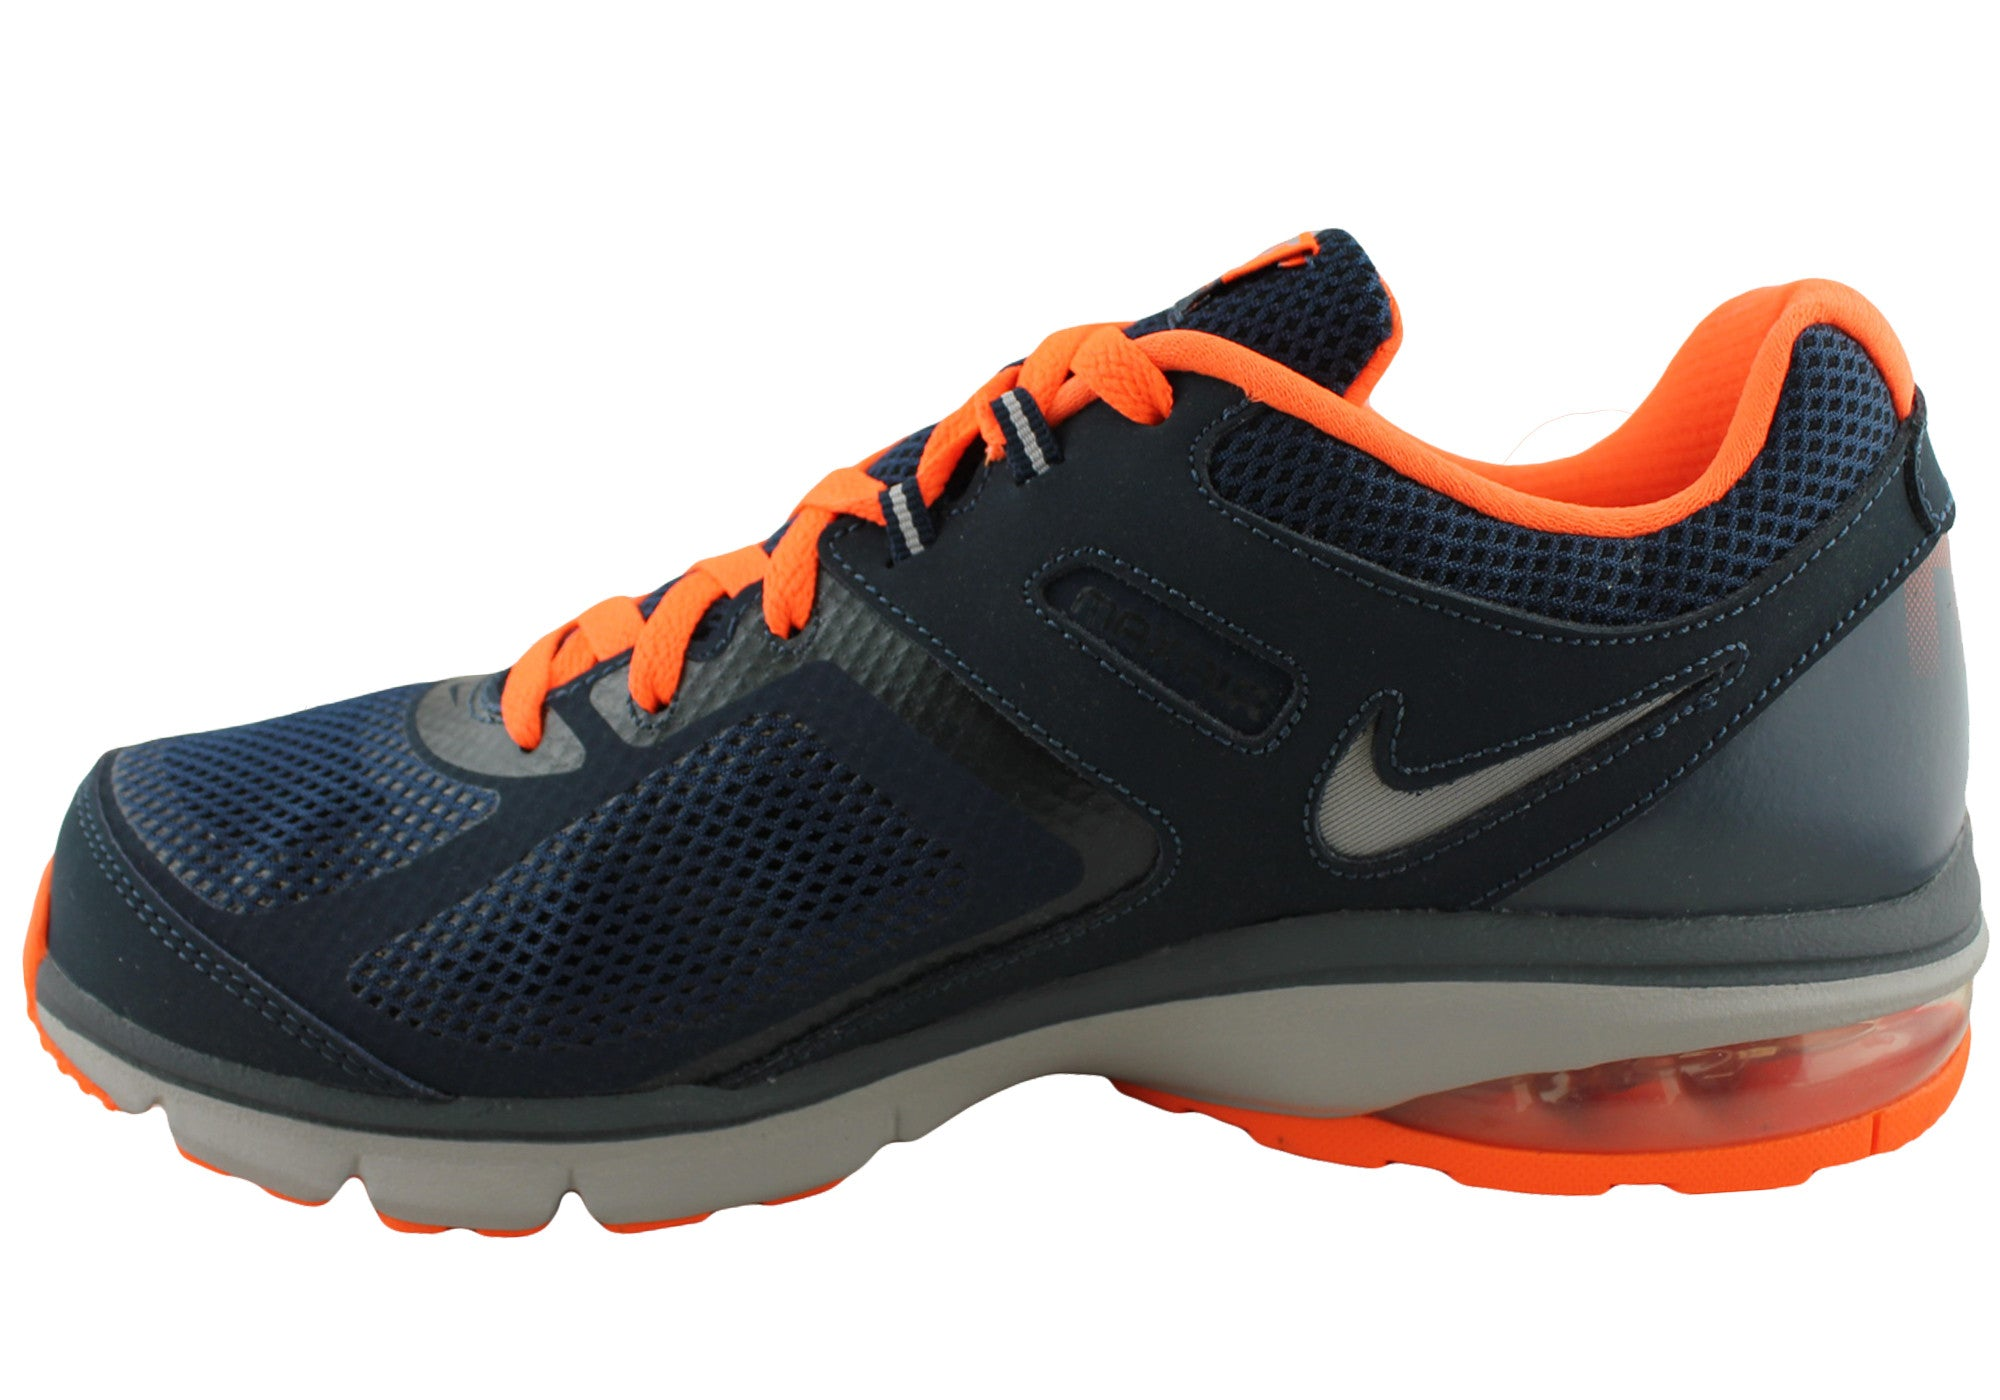 Nike Air Max Defy RN Mens Running/Sports Shoes